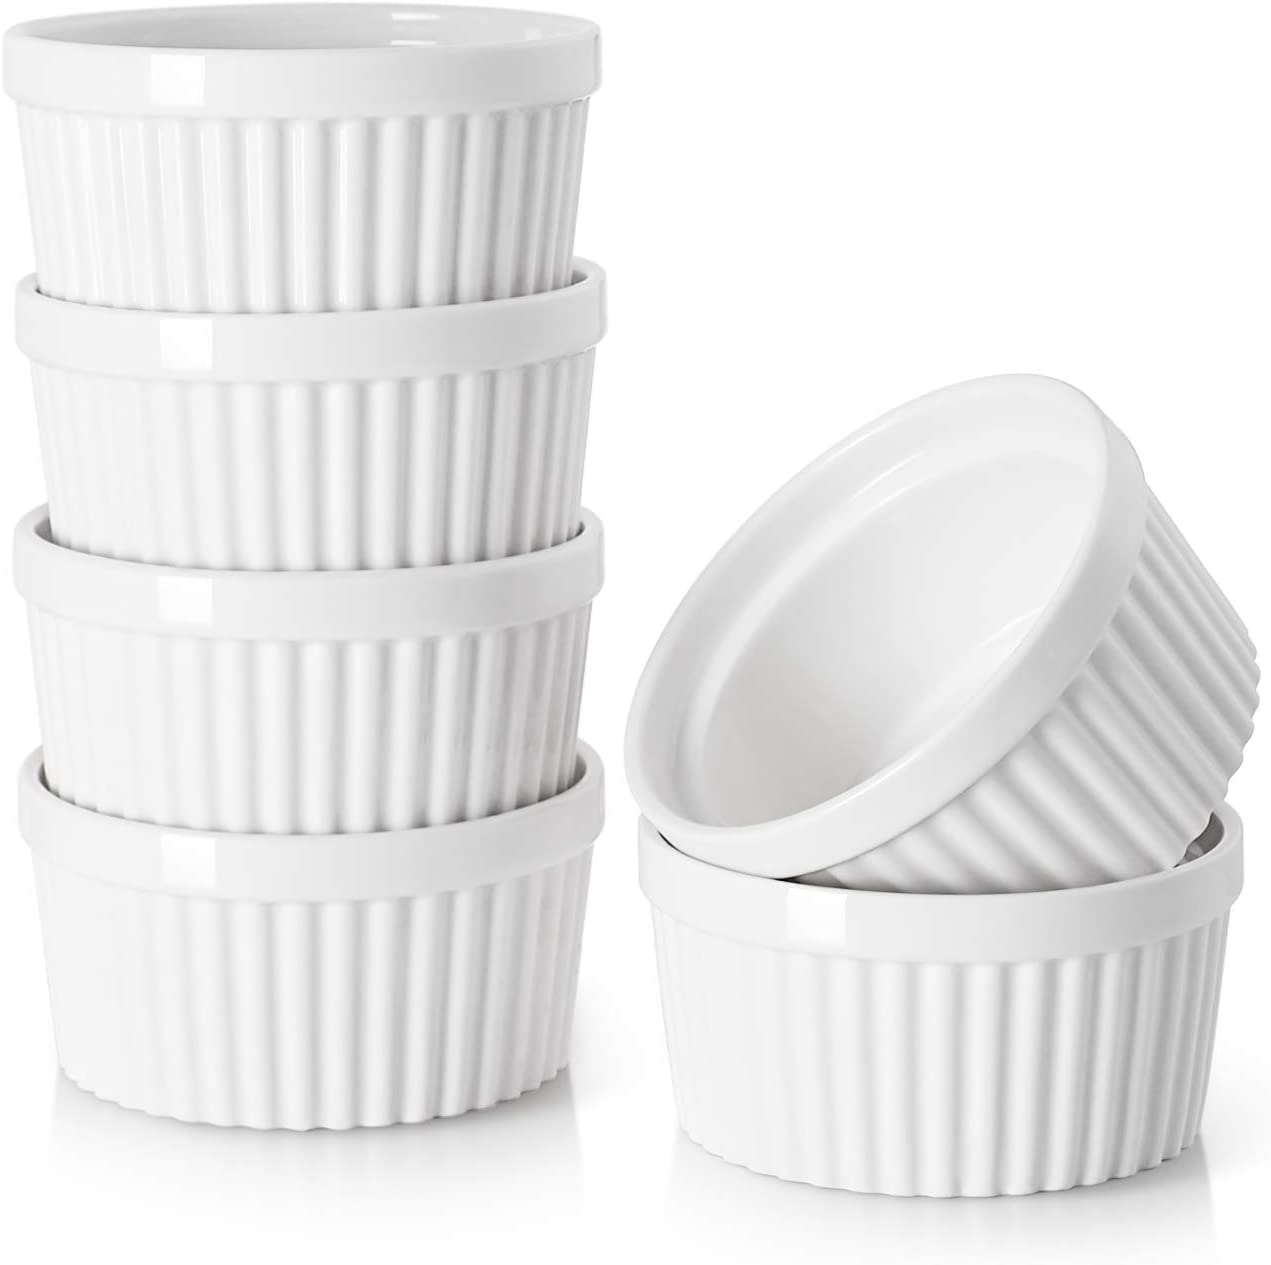 DOWAN 4 Oz Porcelain Ramekins - Souffle Dish Ramekins for Creme Brulee Pudding Oven Safe, Classic Style Ramekins Bowls for Baking, Set of 6, White